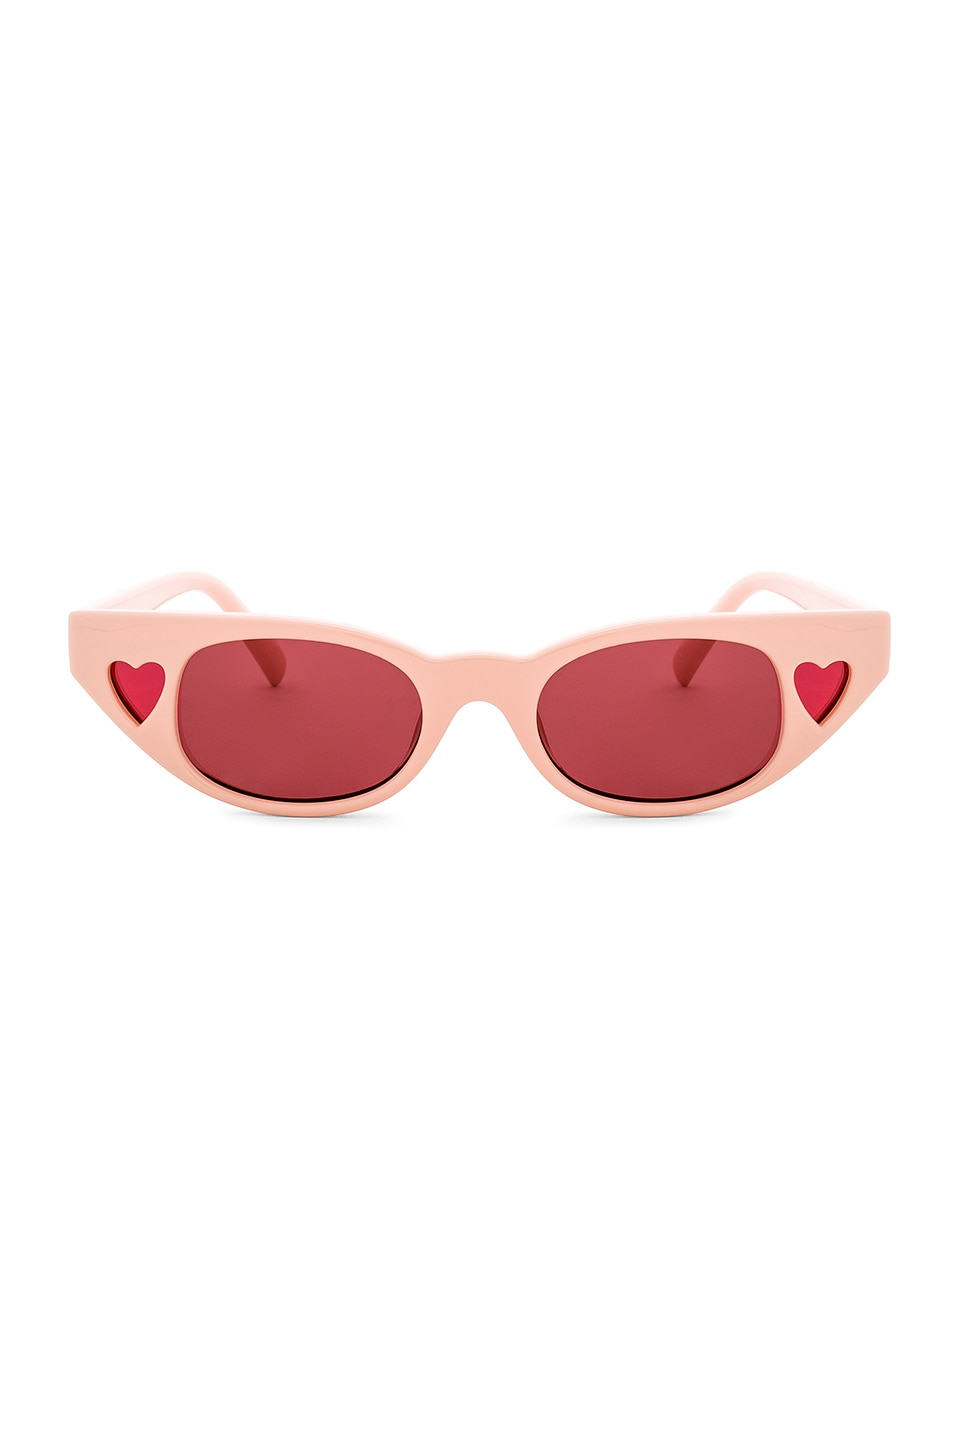 Le Specs x Adam Selman The Heartbreaker in Blush & Rose Mono